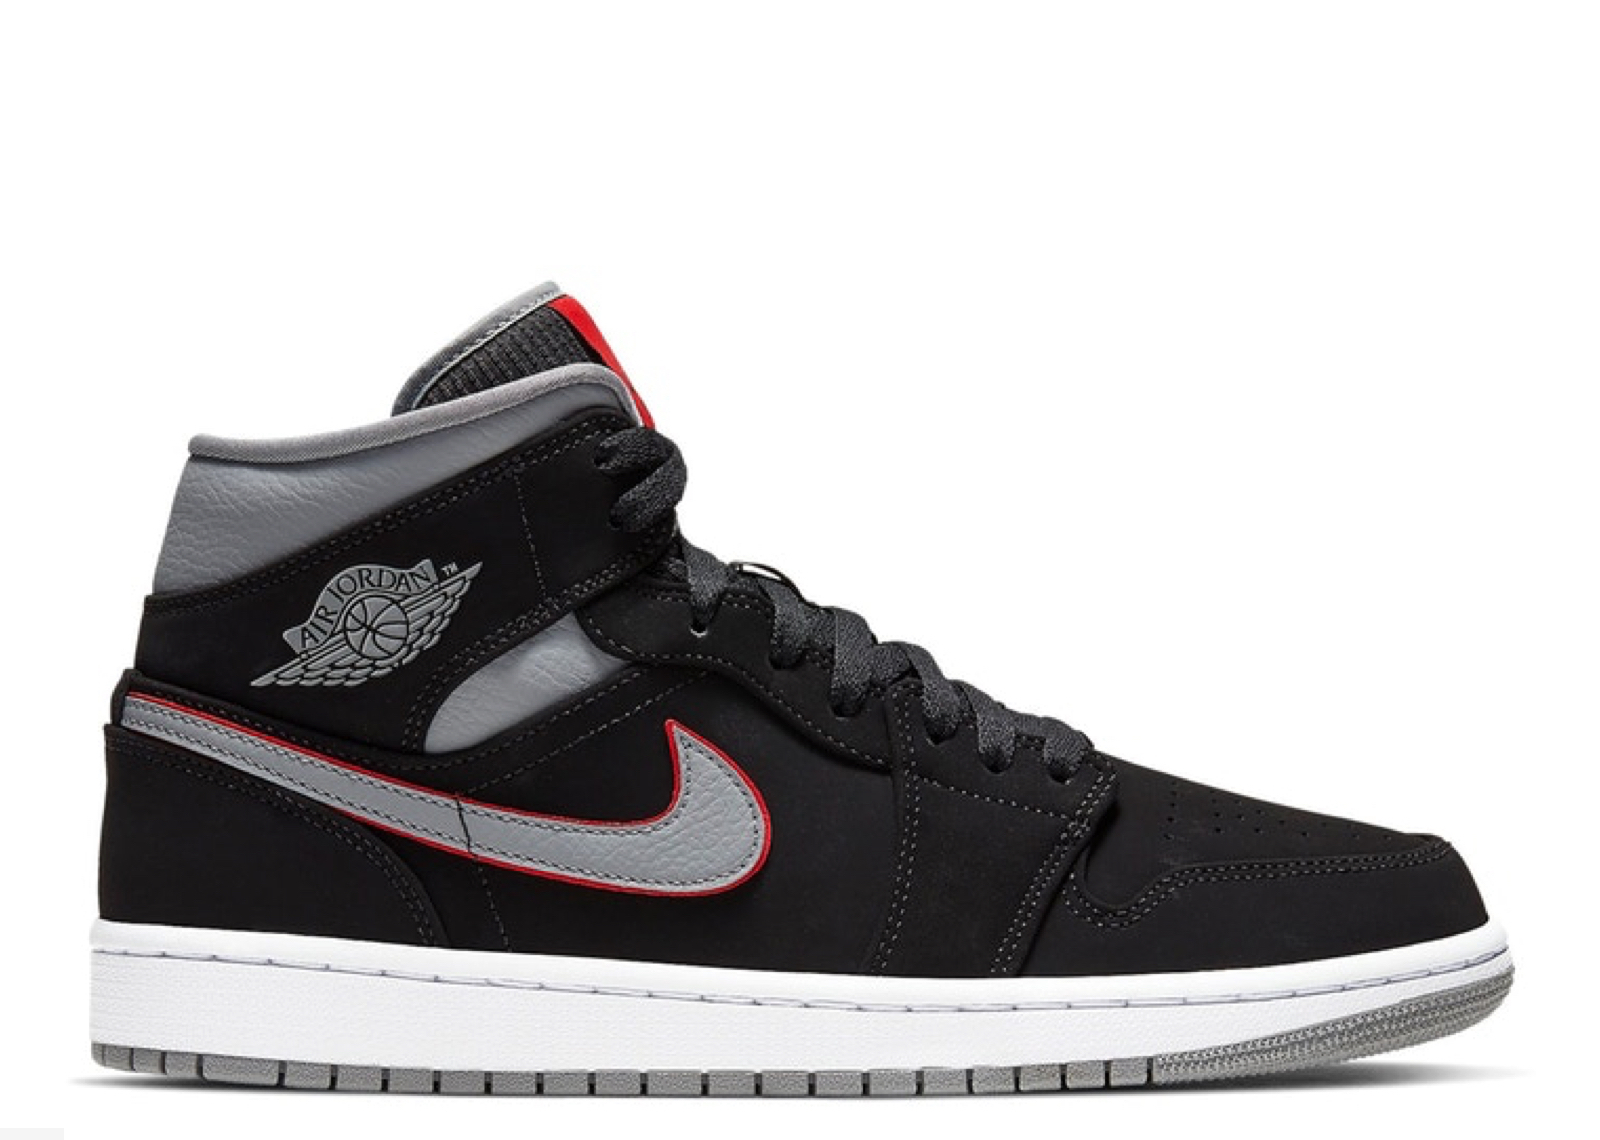 4b5b11ca70a06 Jordan 1 Mid Black Particle Grey Gym Red